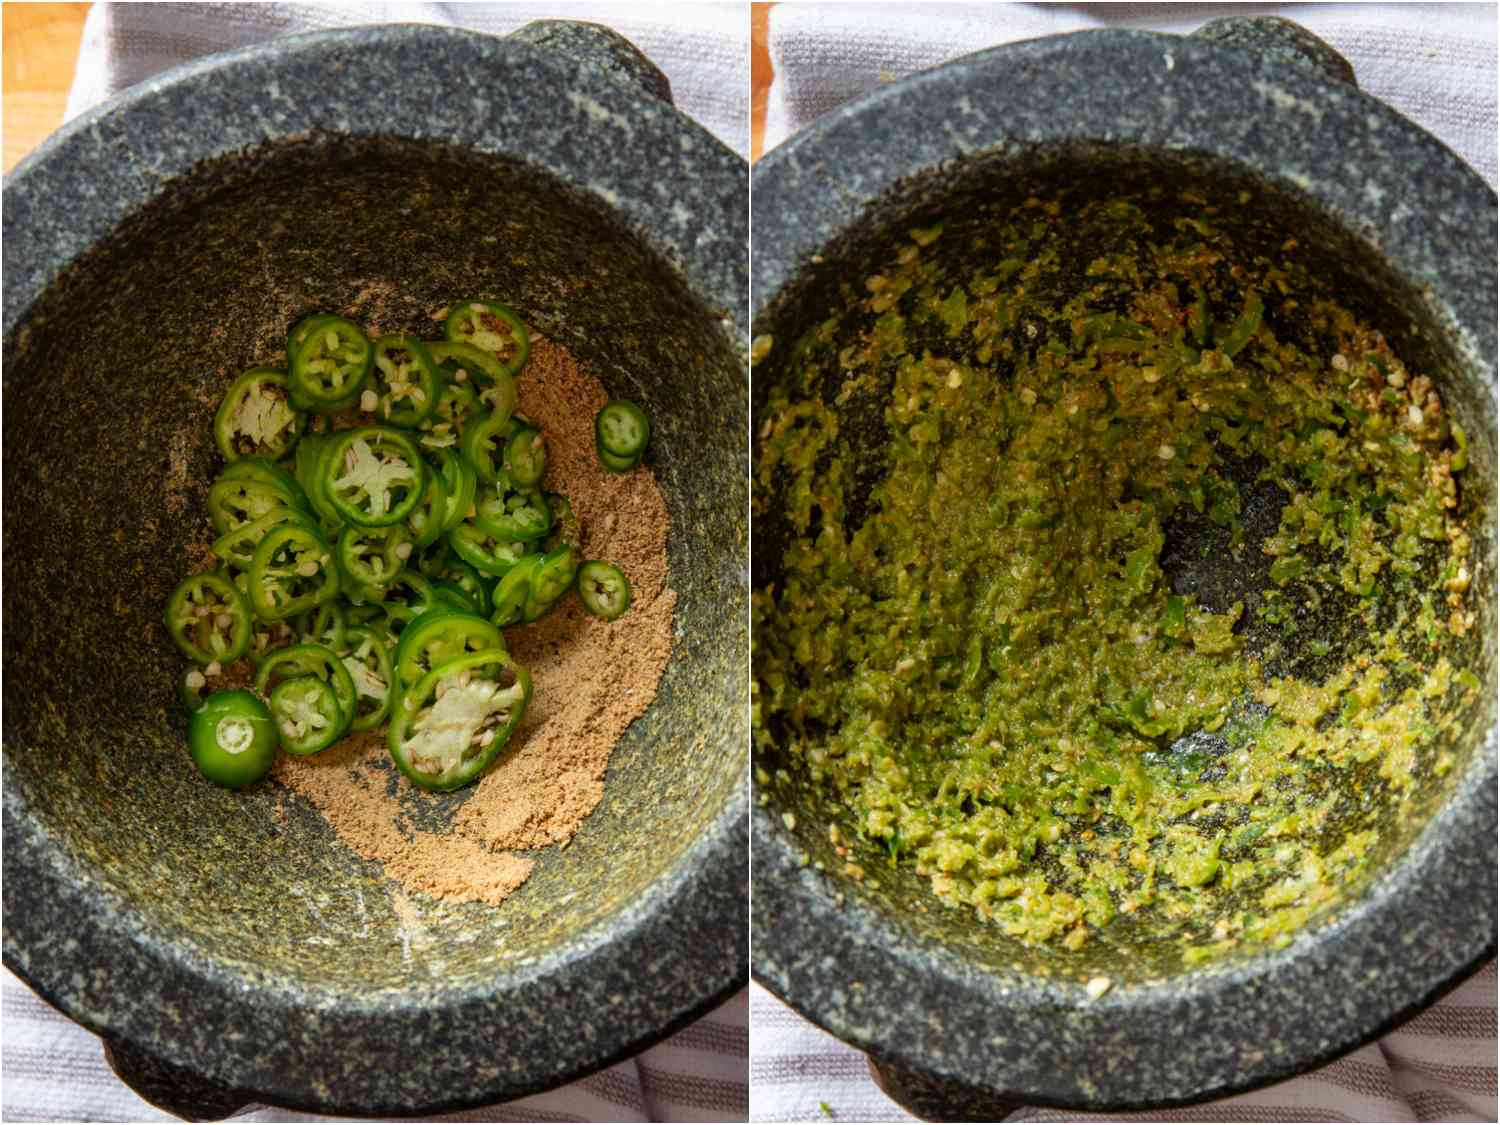 collage: serrano chiles added to mortar; pounded chiles